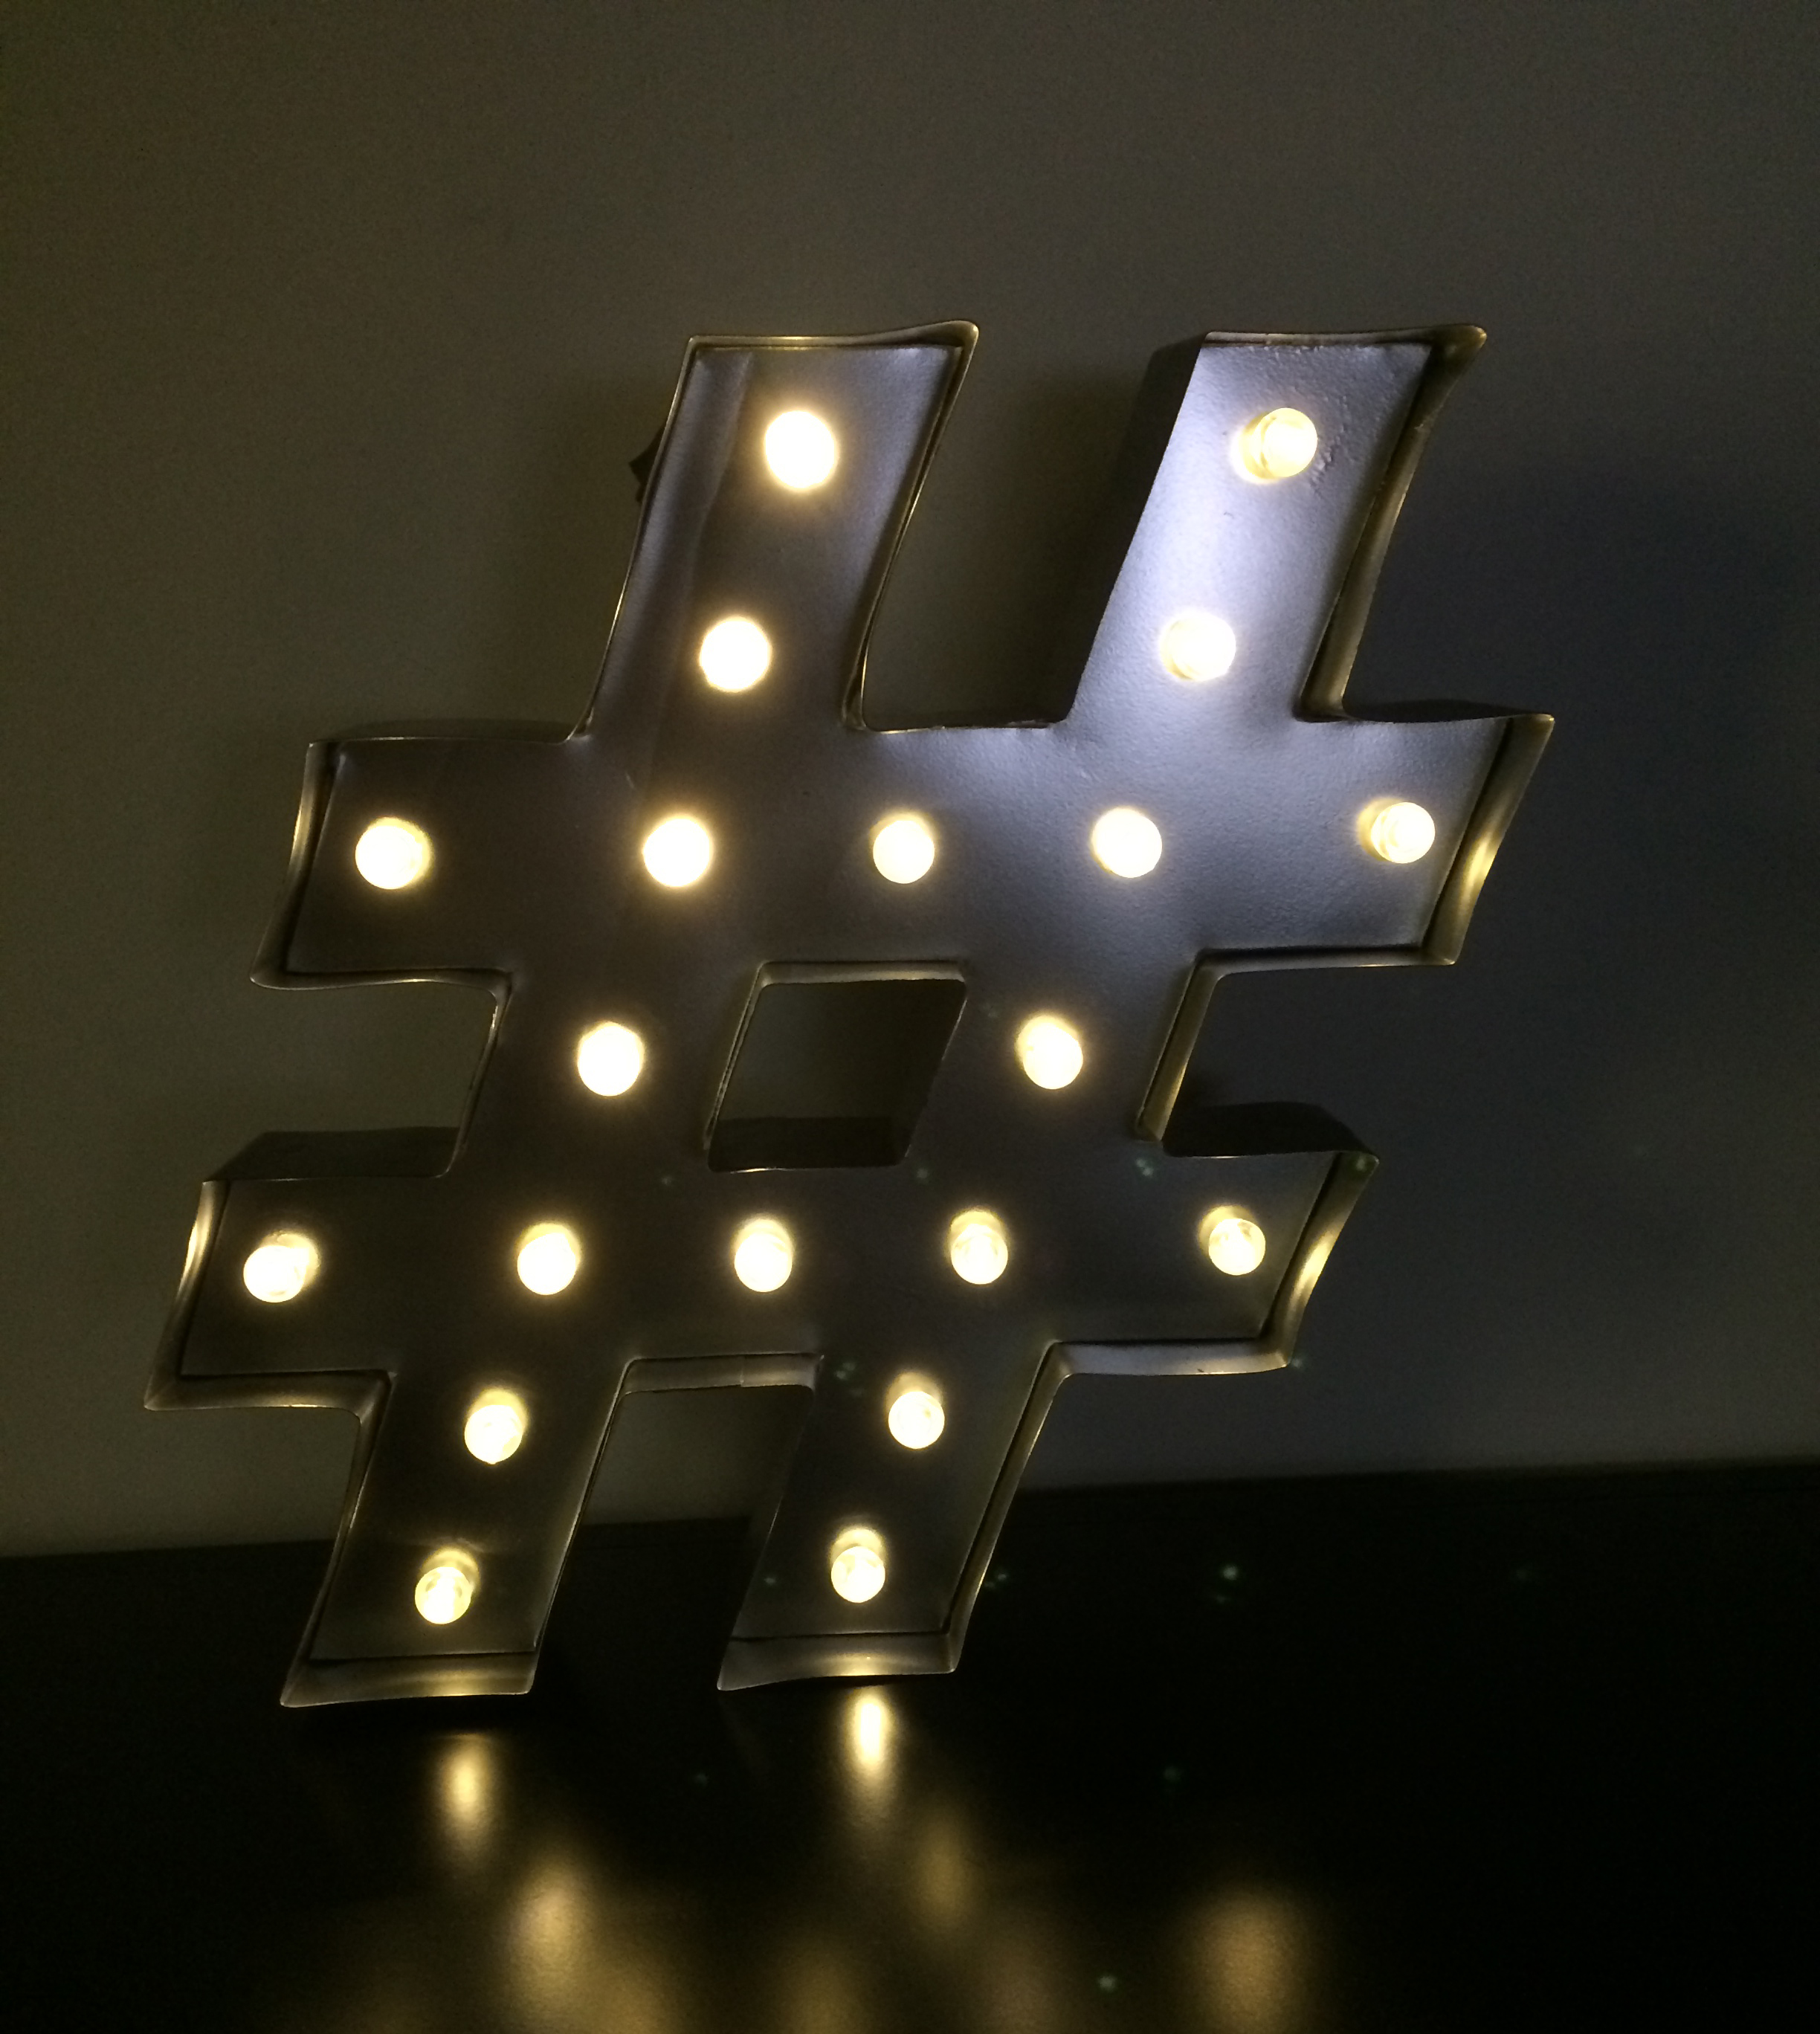 A look at my hashtag sign shining brightly in the dark.